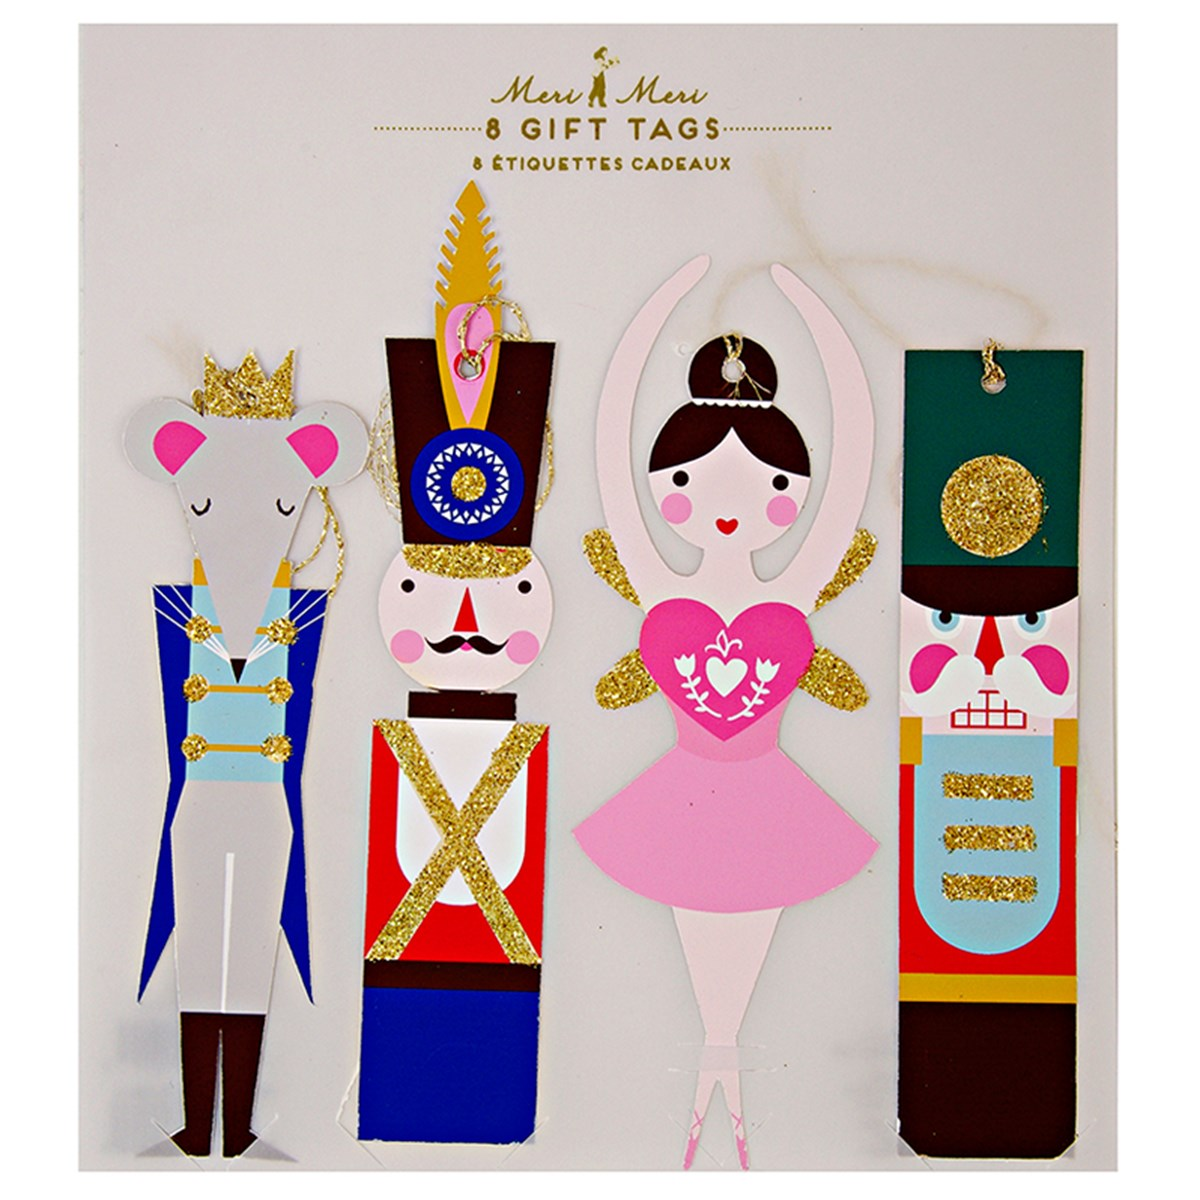 Meri Meri Nutcracker Gift Tags